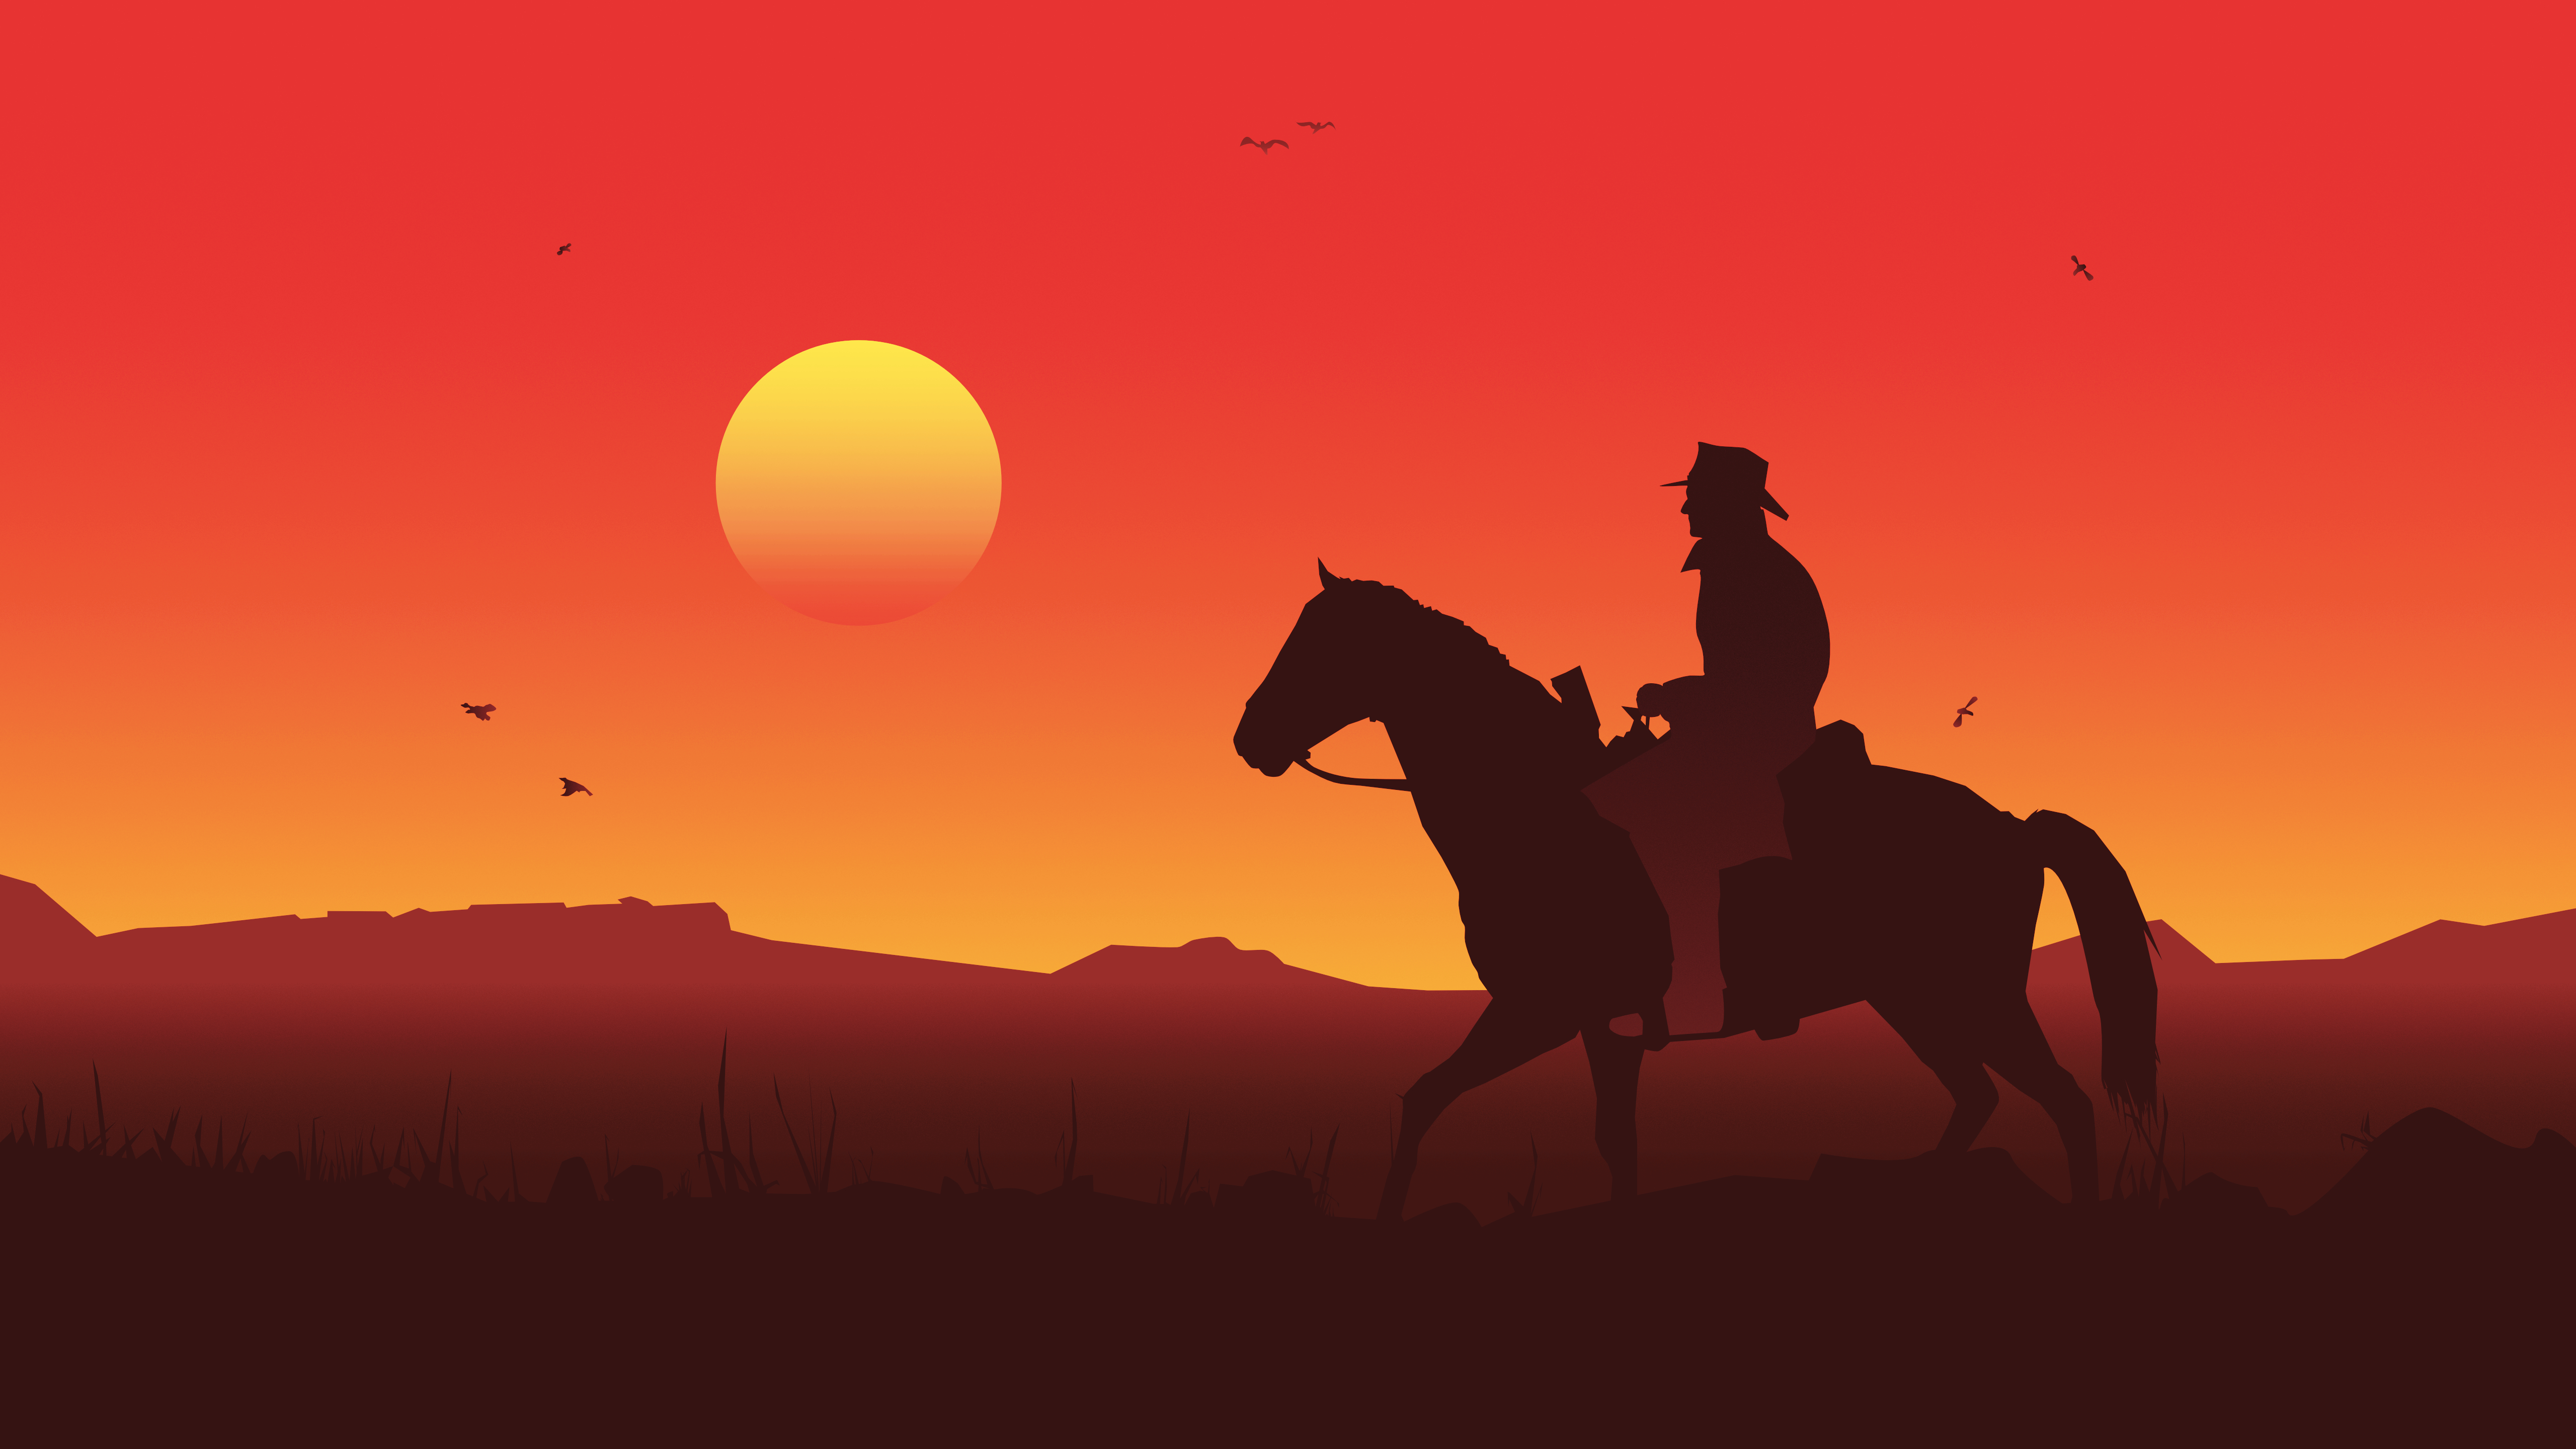 1920x1080 Red Dead Redemption 2 1080p Laptop Full Hd Wallpaper Hd Games 4k Wallpapers Images Photos And Background